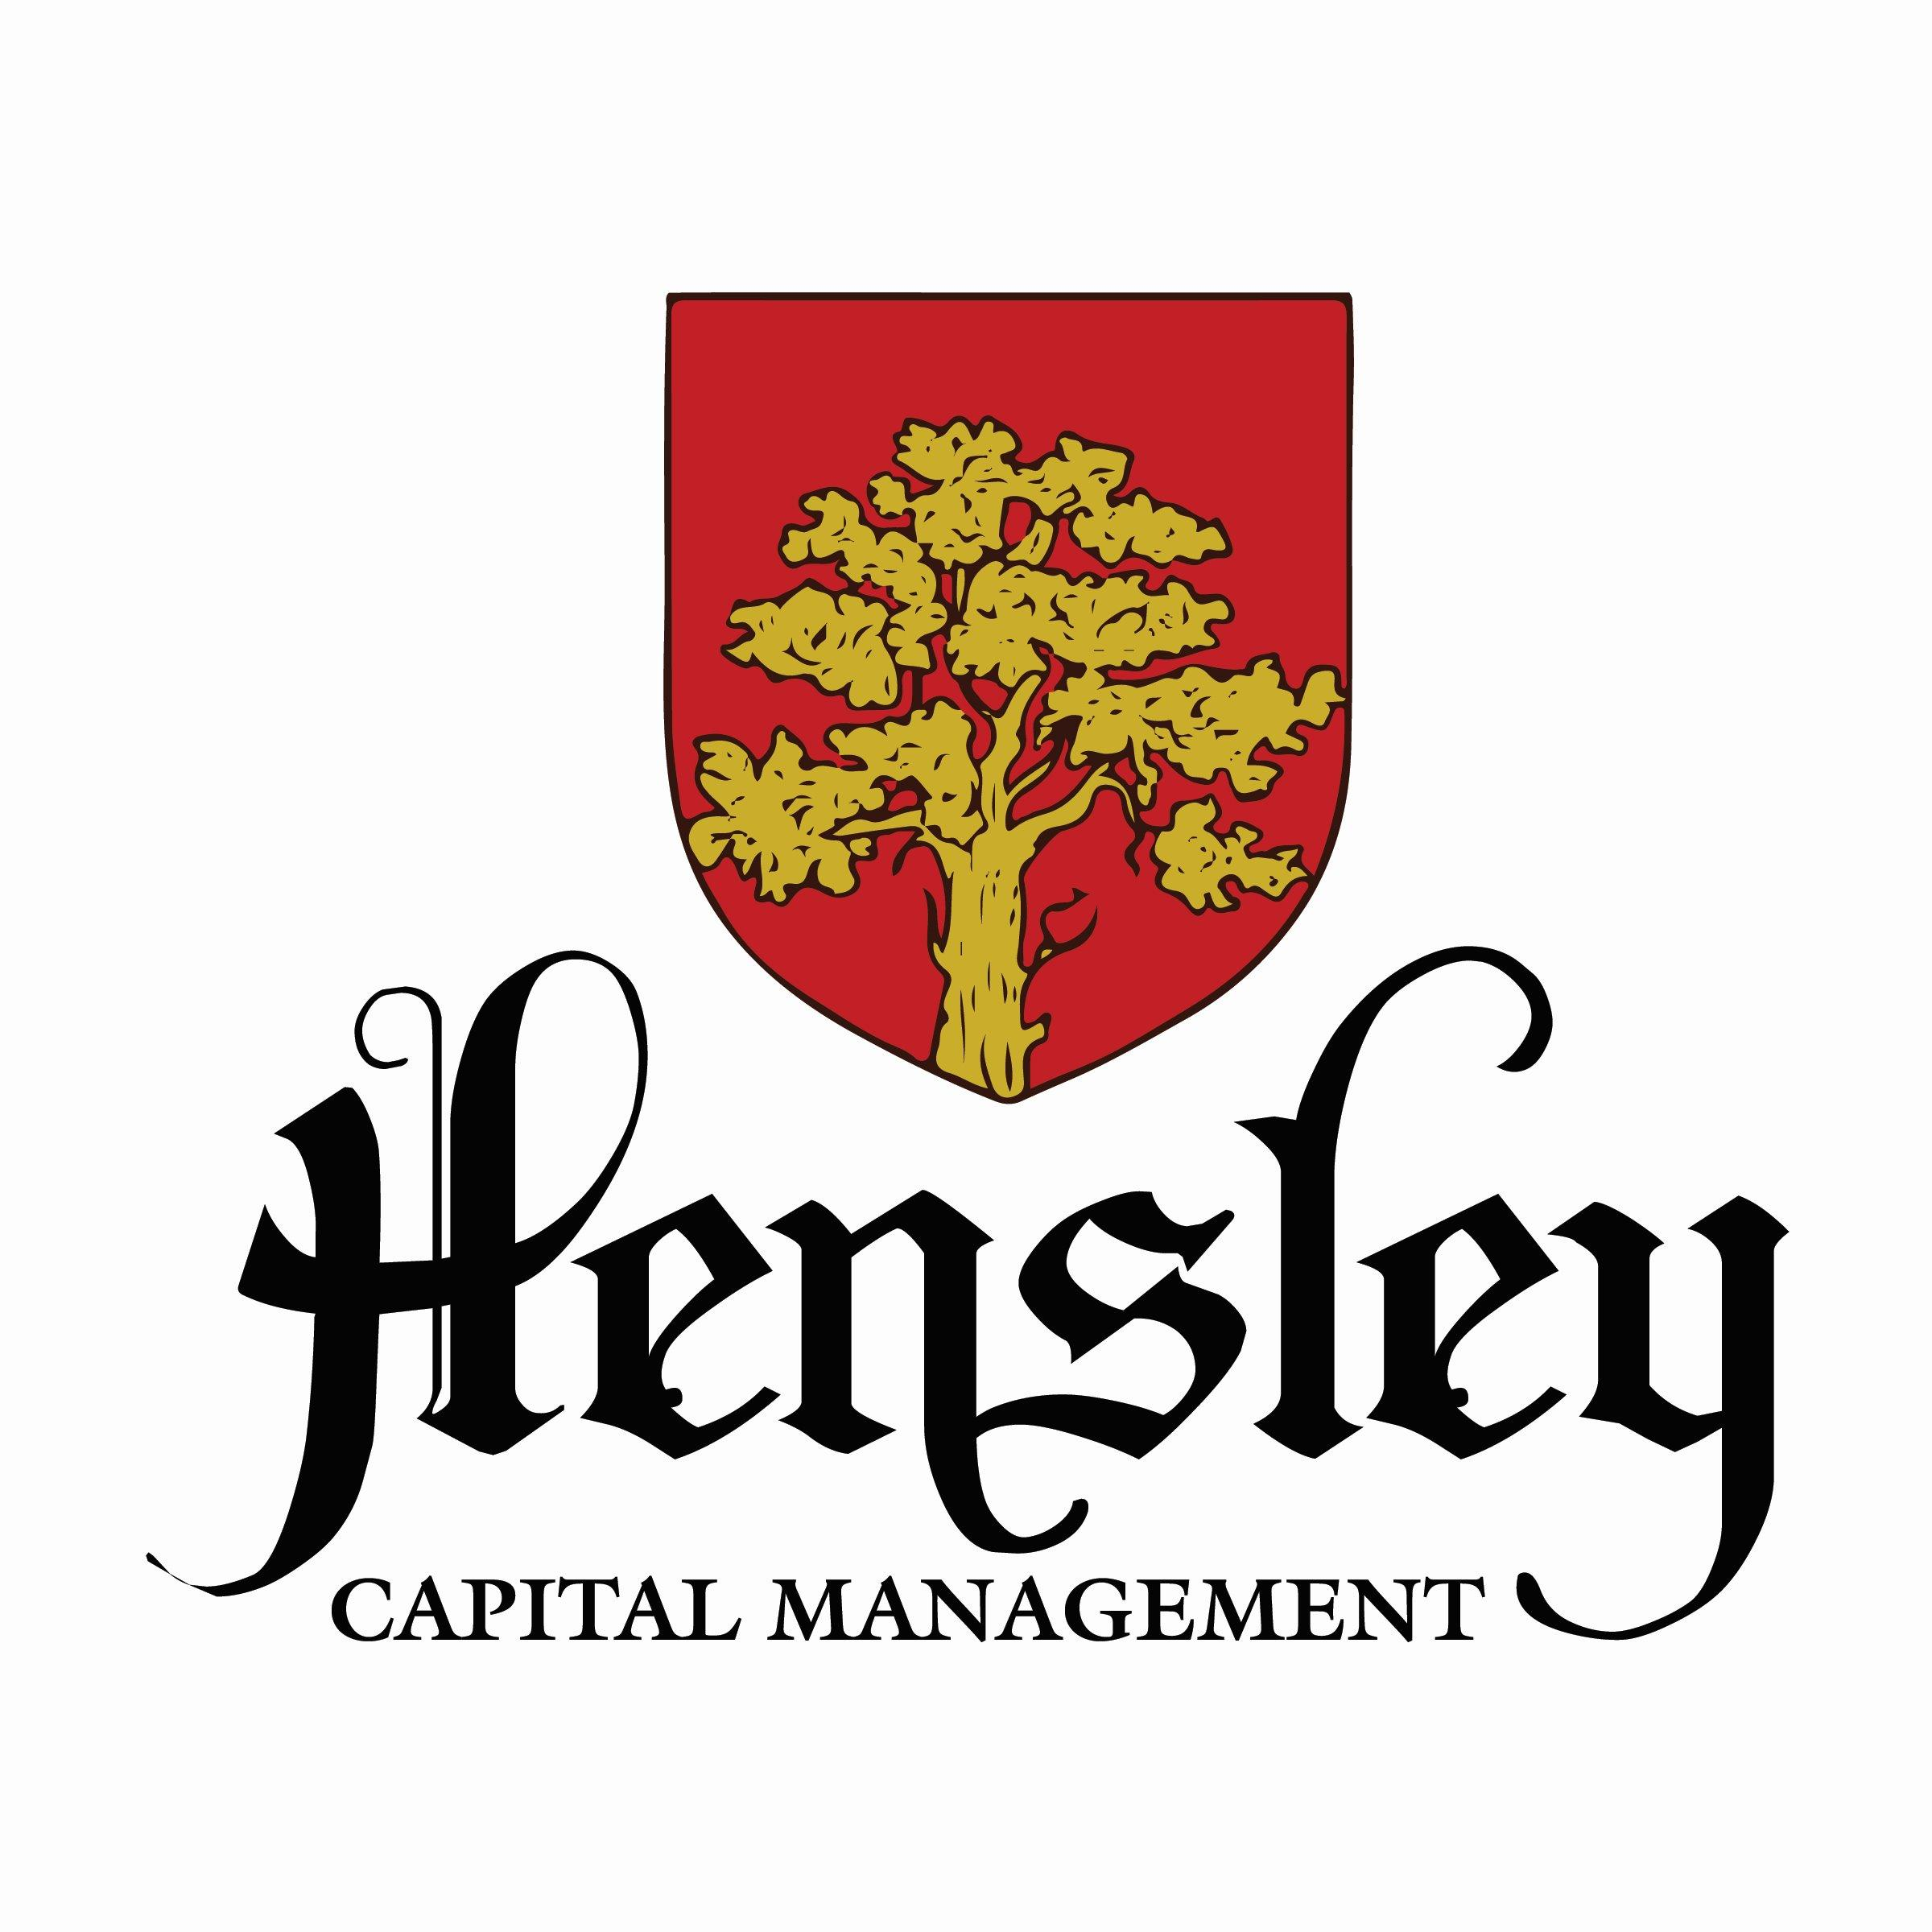 image of the Hensley Capital Management